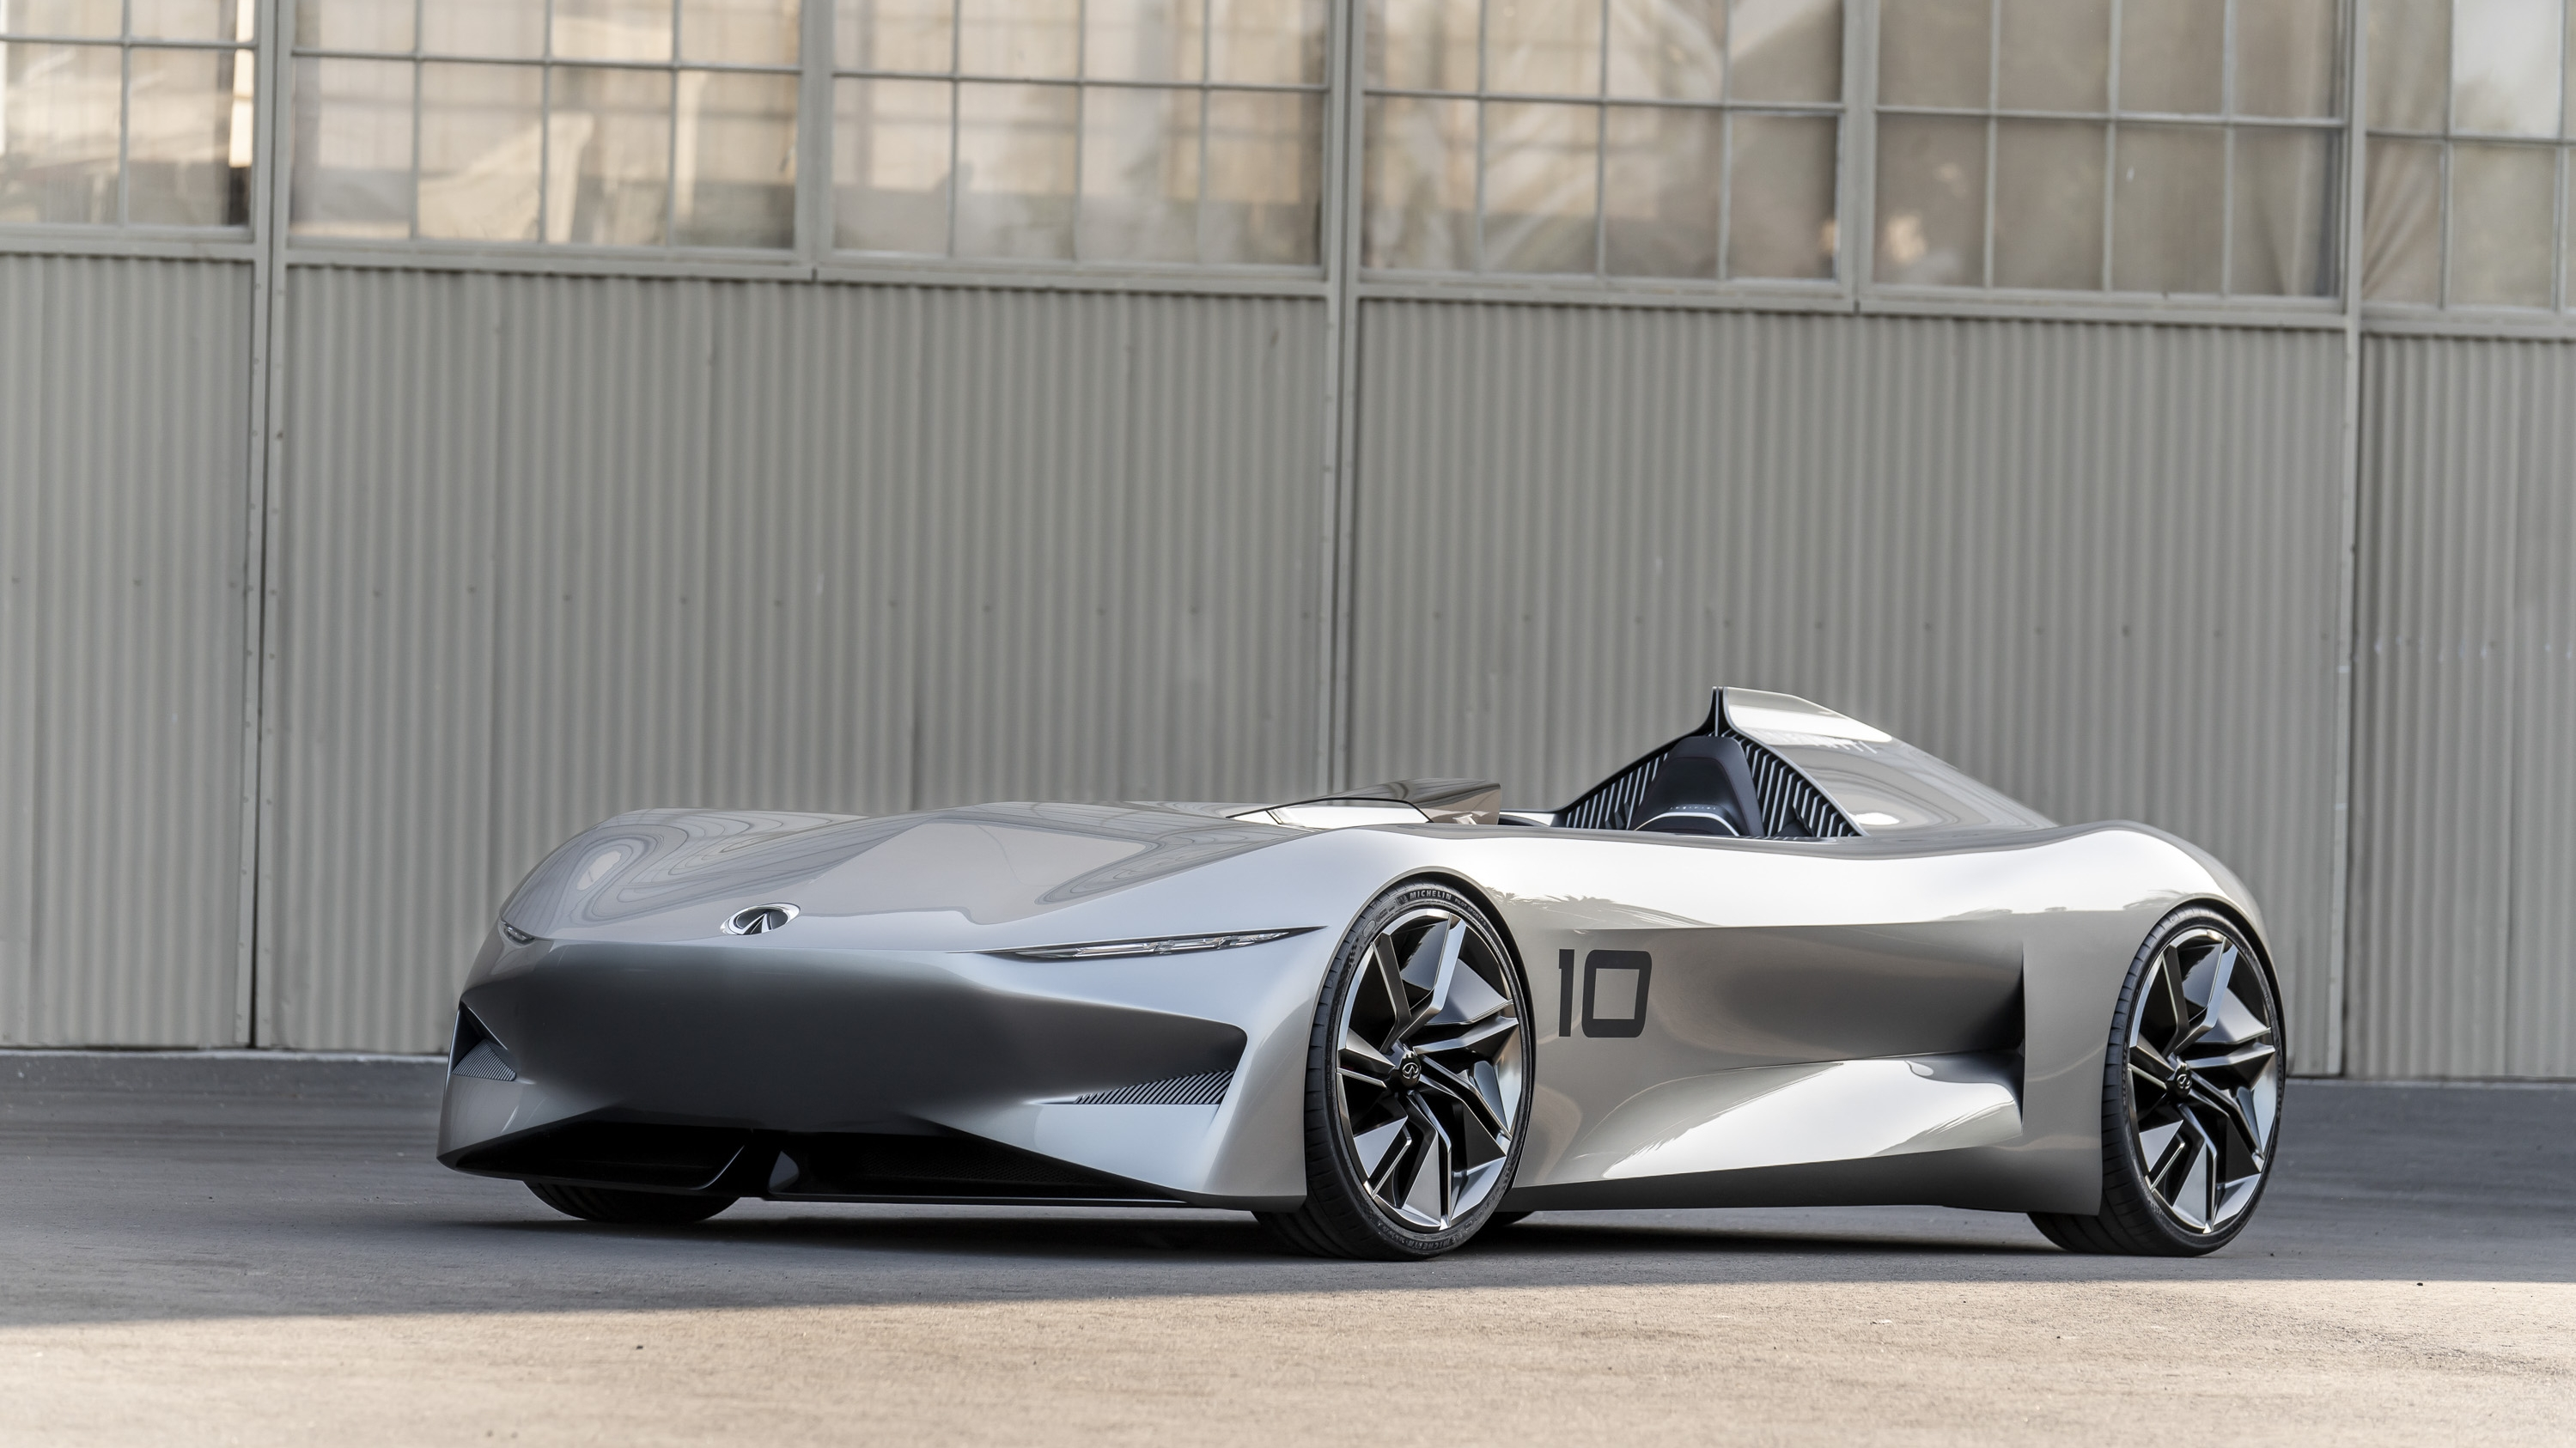 Future Of The Car: 2018 Infinity Prototype 10 Concept